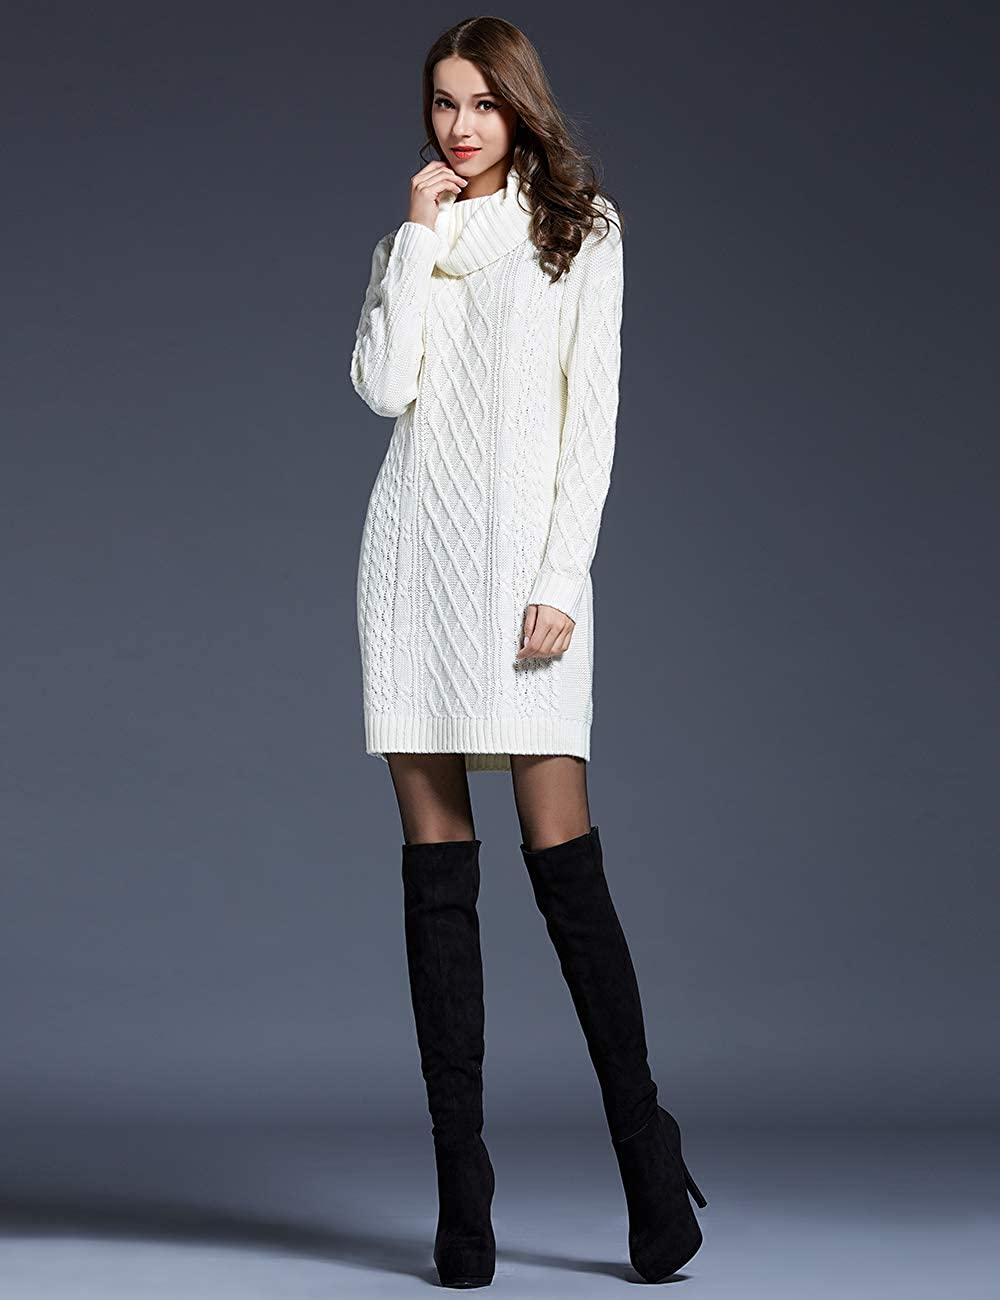 Women Turtleneck Cable Knit Long Sleeve Loose Solid Color Fashion Warm Sweater Pullover Tops White L